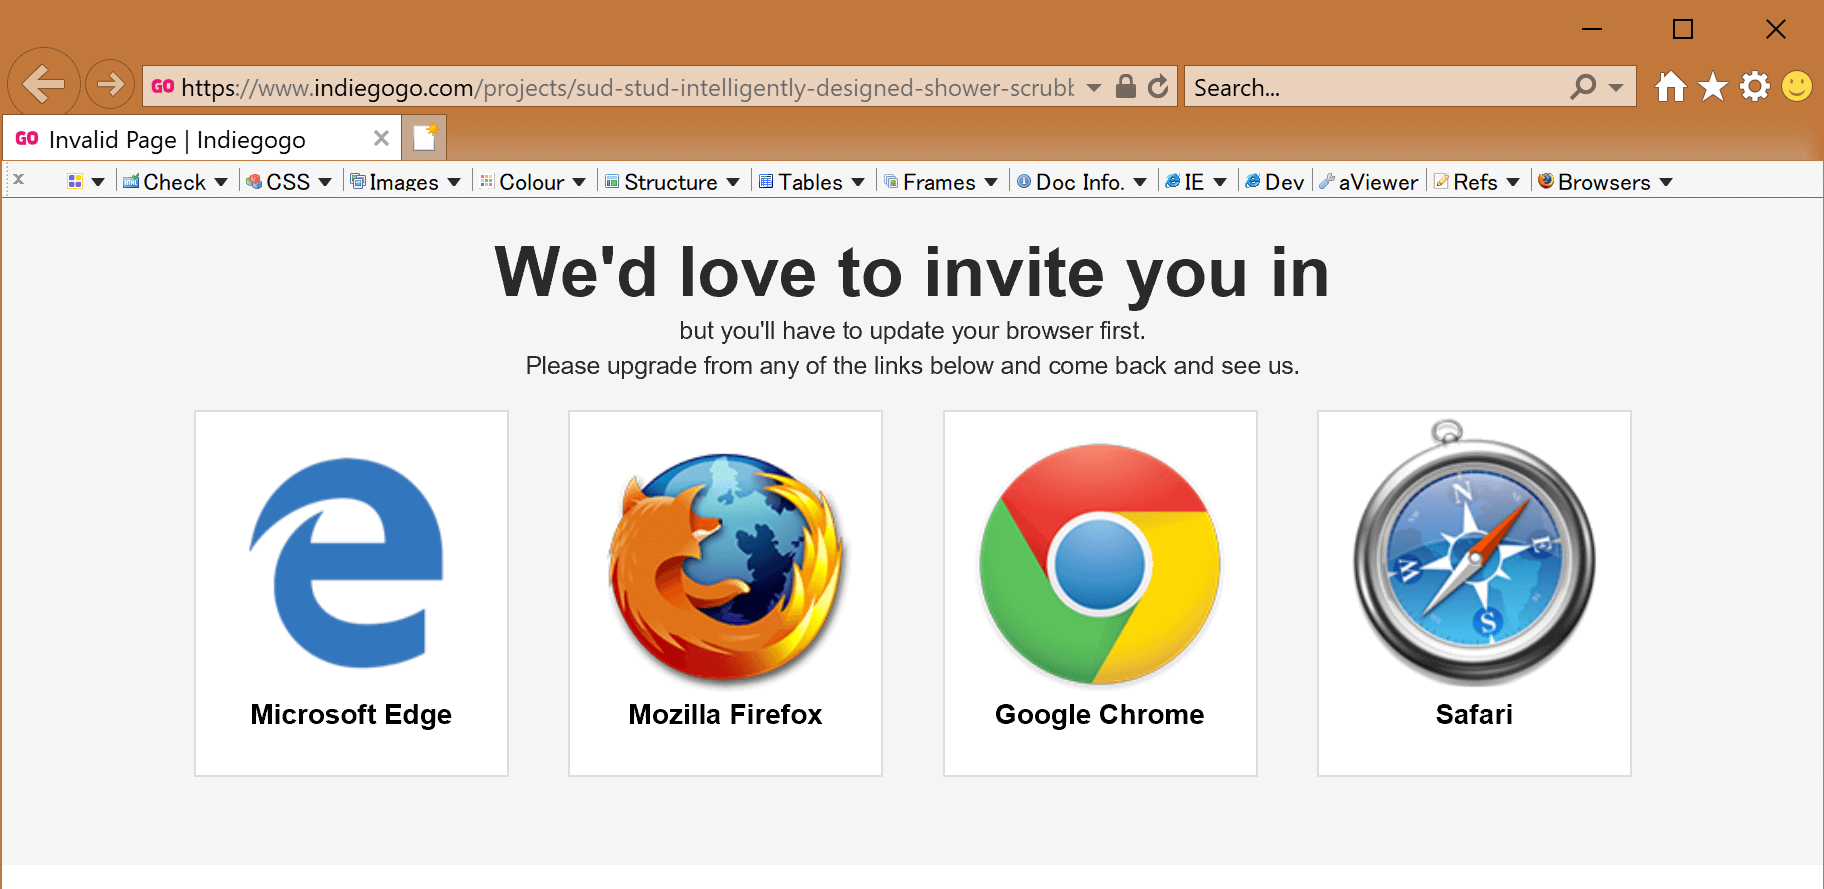 "Internet Explorer window with a message that reads: ""We'd love to invite you in but you'll have to update your browser first. Please upgrade from any of the links below and come back and see us."" Then logos / links for Microsoft Edge, Mozilla Firefox, Google Chrome, and Safari."